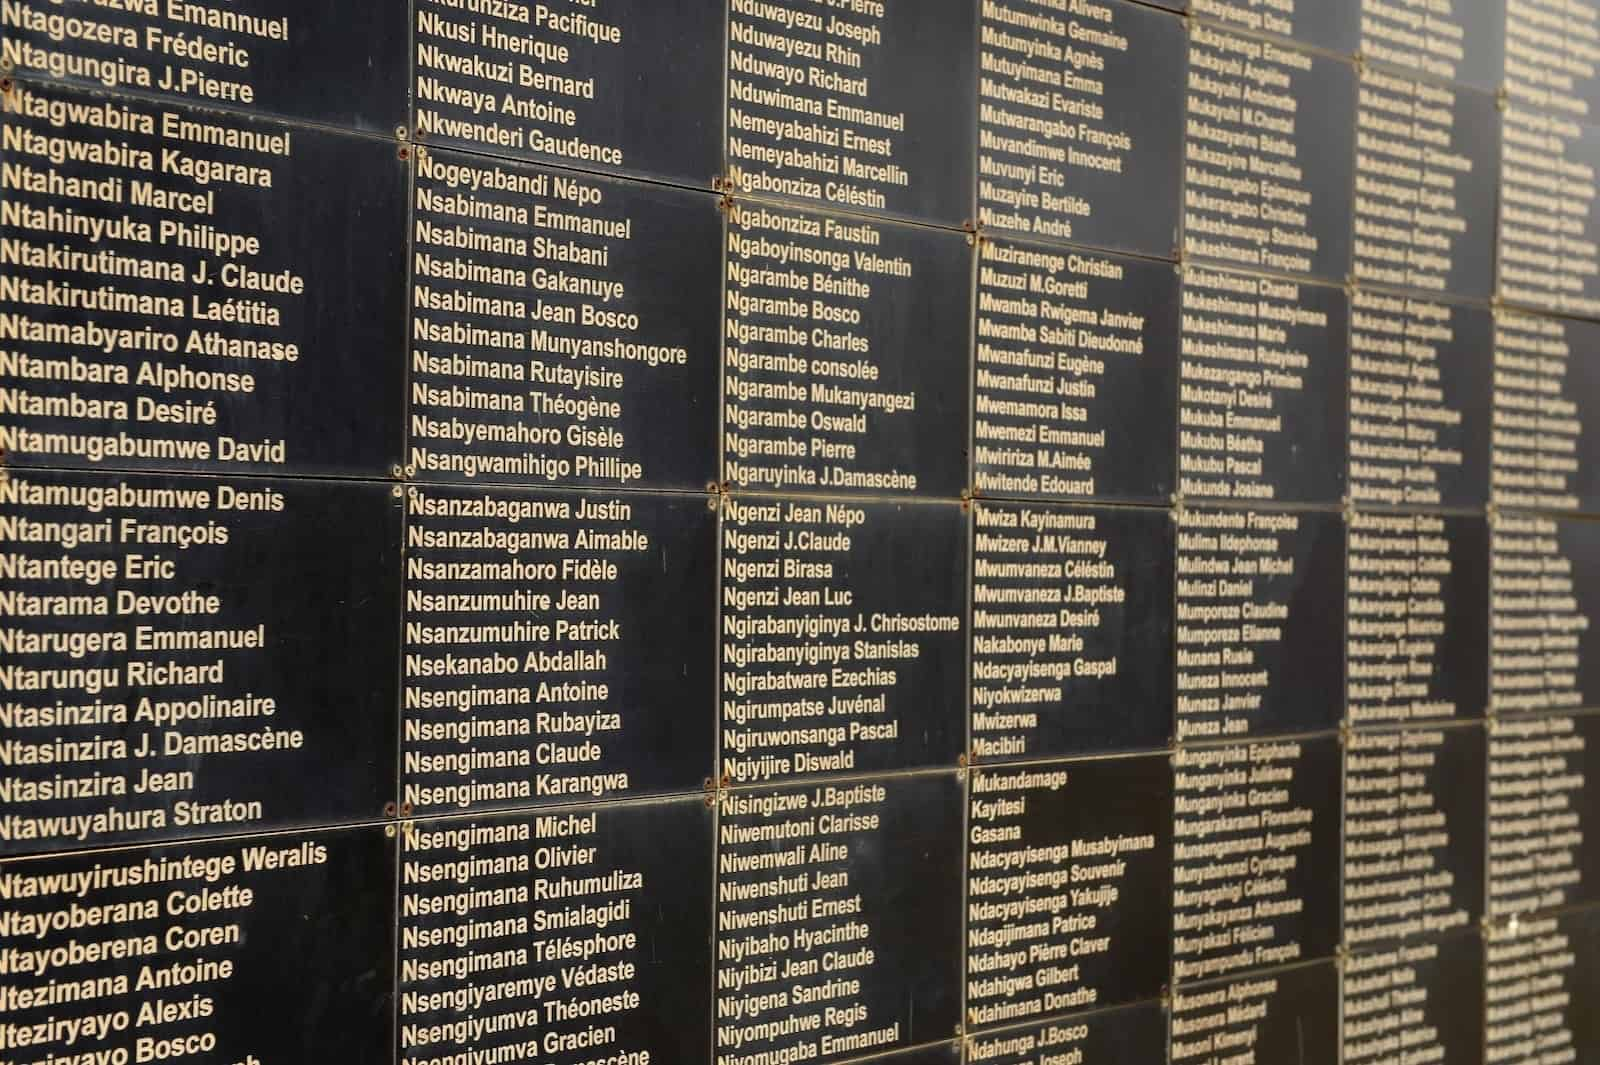 A black wall with a large number of names on it at the Genocide Memorial in Kigali, Rwanda.